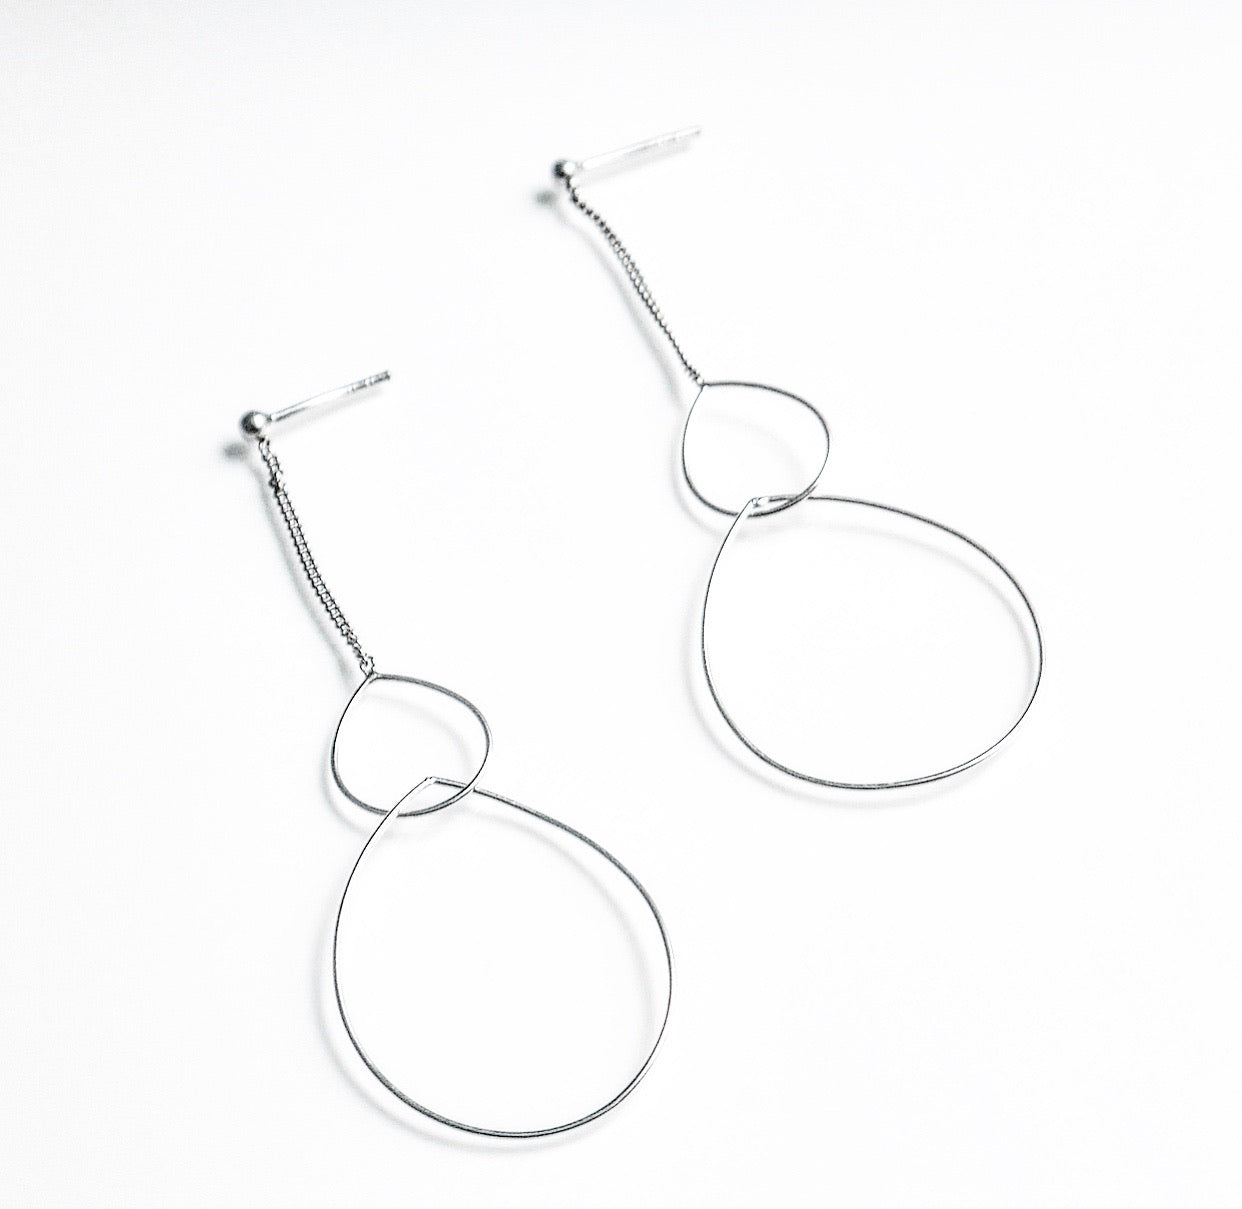 sterling silver earrings long nice light weight earrings sterling silver jewelry earrings